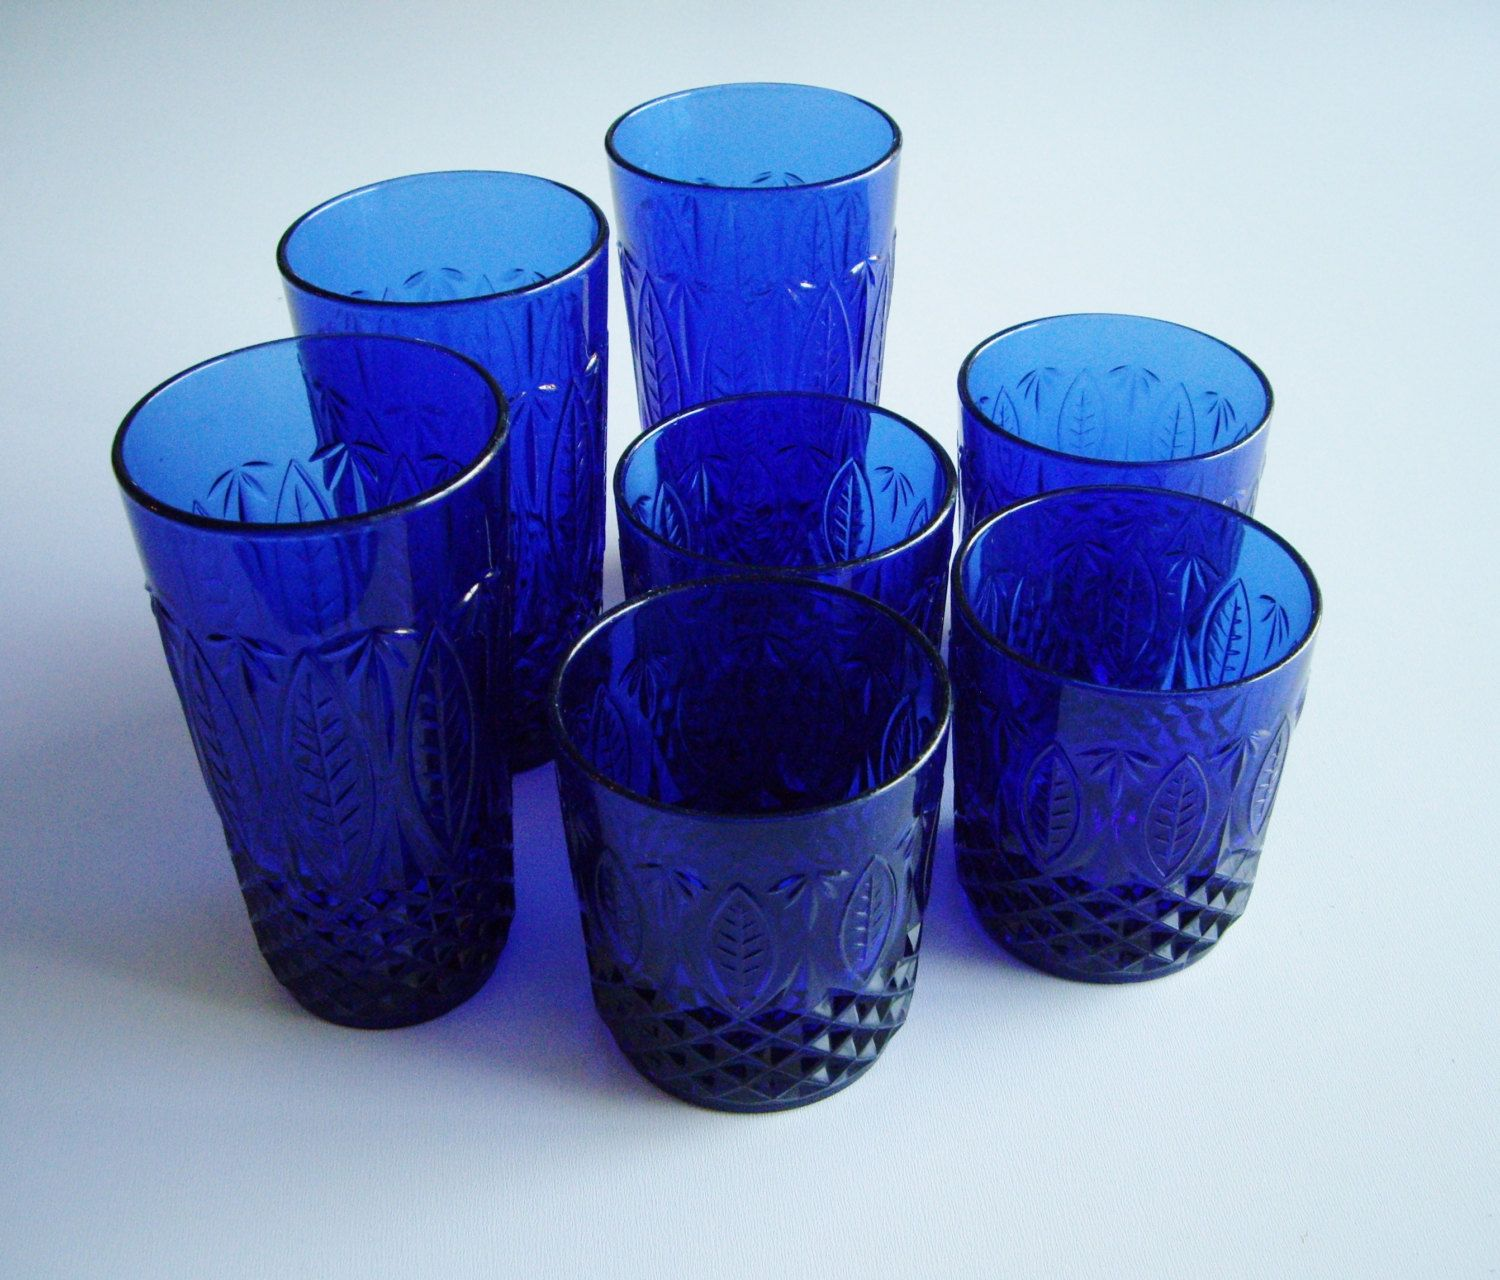 shop holder stretch sticks antique candle northwood glass sapphire blue